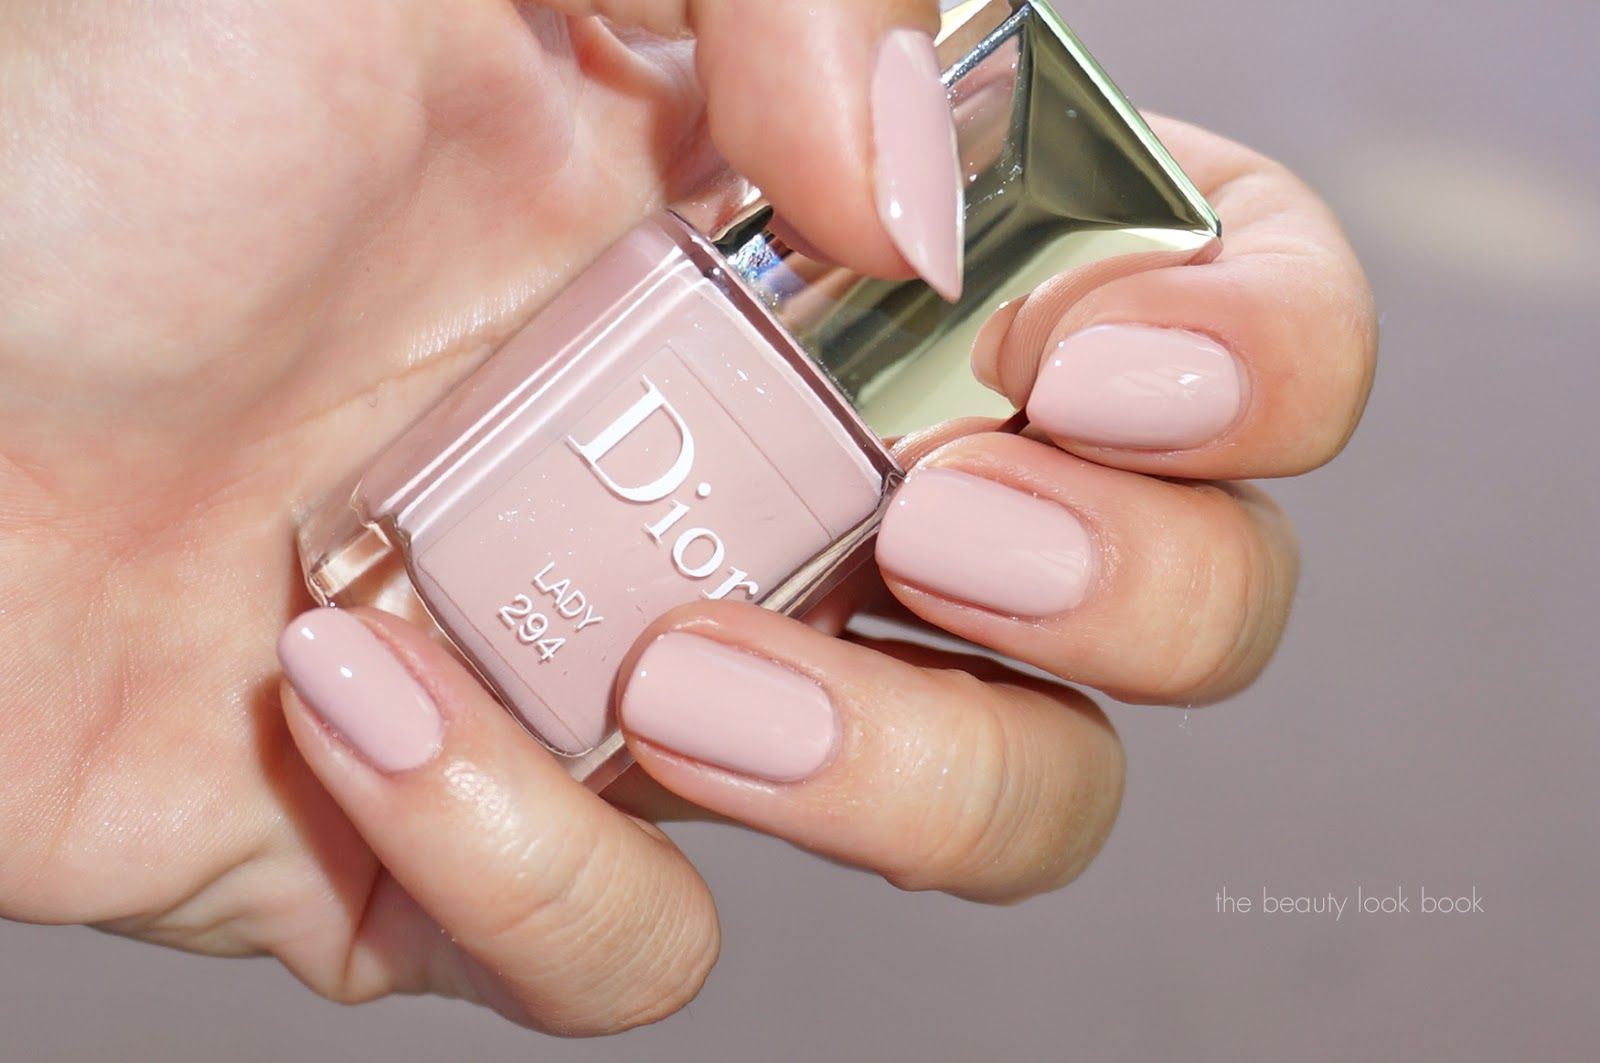 The Beauty Look Book Dior Kingdom Of Colors Spring 2015 Blossoming Top Coa